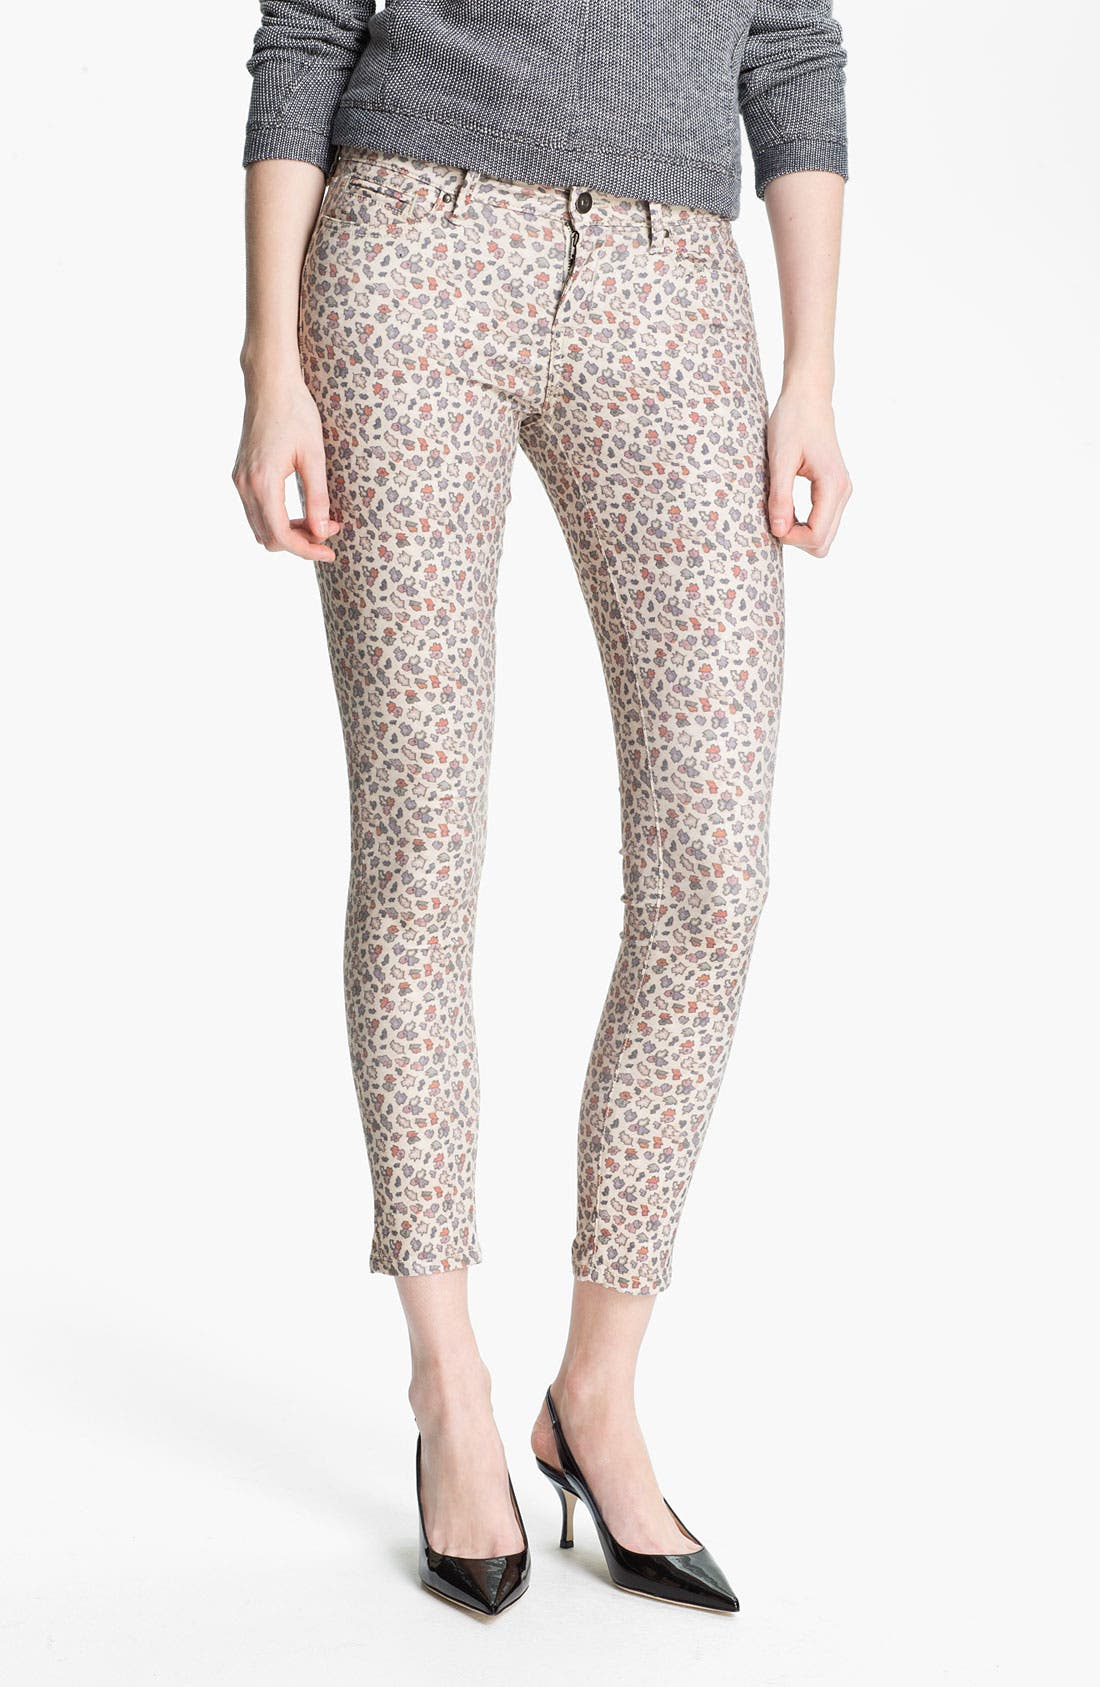 Alternate Image 1 Selected - Twenty8Twelve 'Ashberry' Skinny Print Stretch Jeans